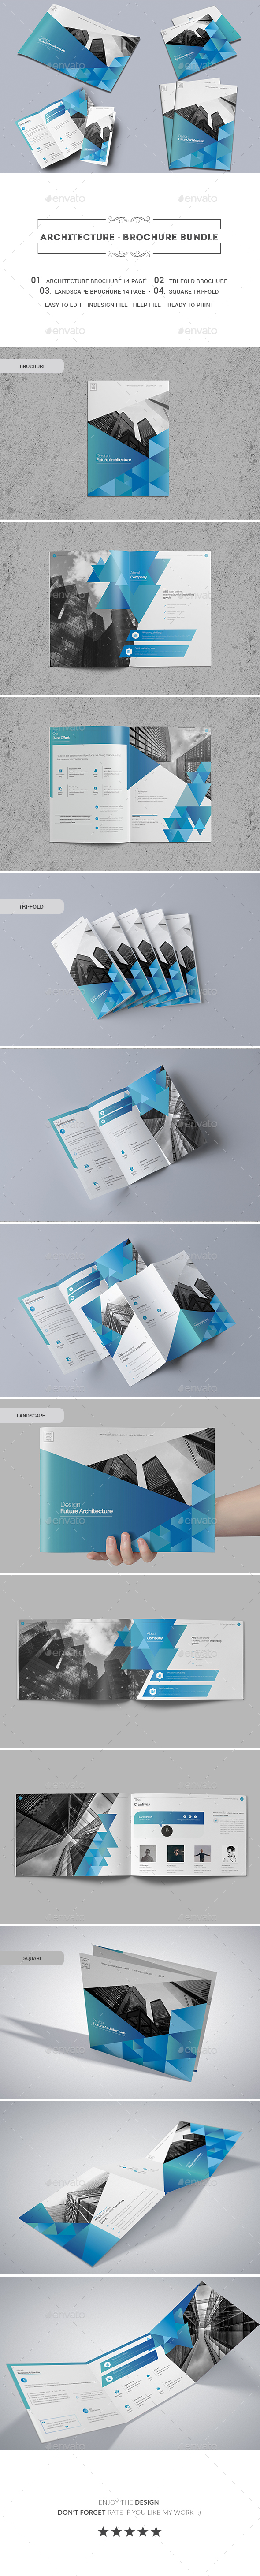 Architecture - Brochure Bundle - Corporate Brochures